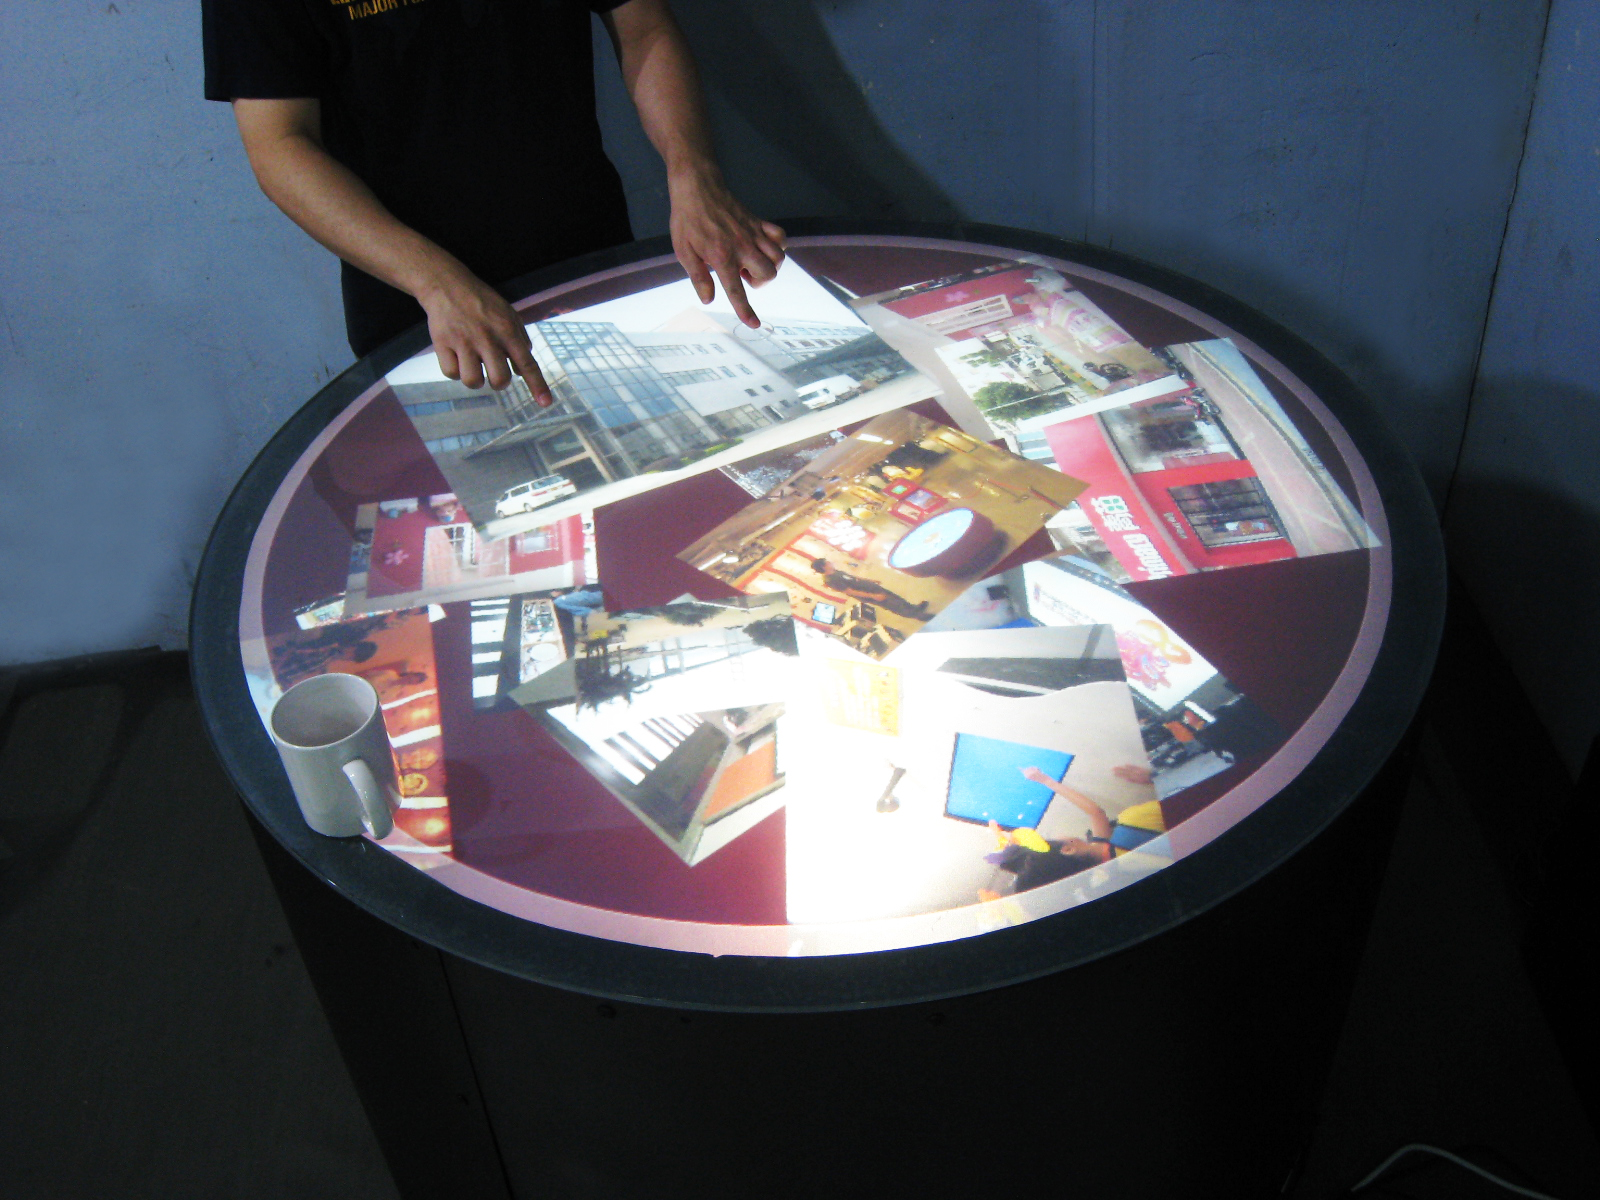 Round Multitouch Table - 105cm diameter x 85cm height